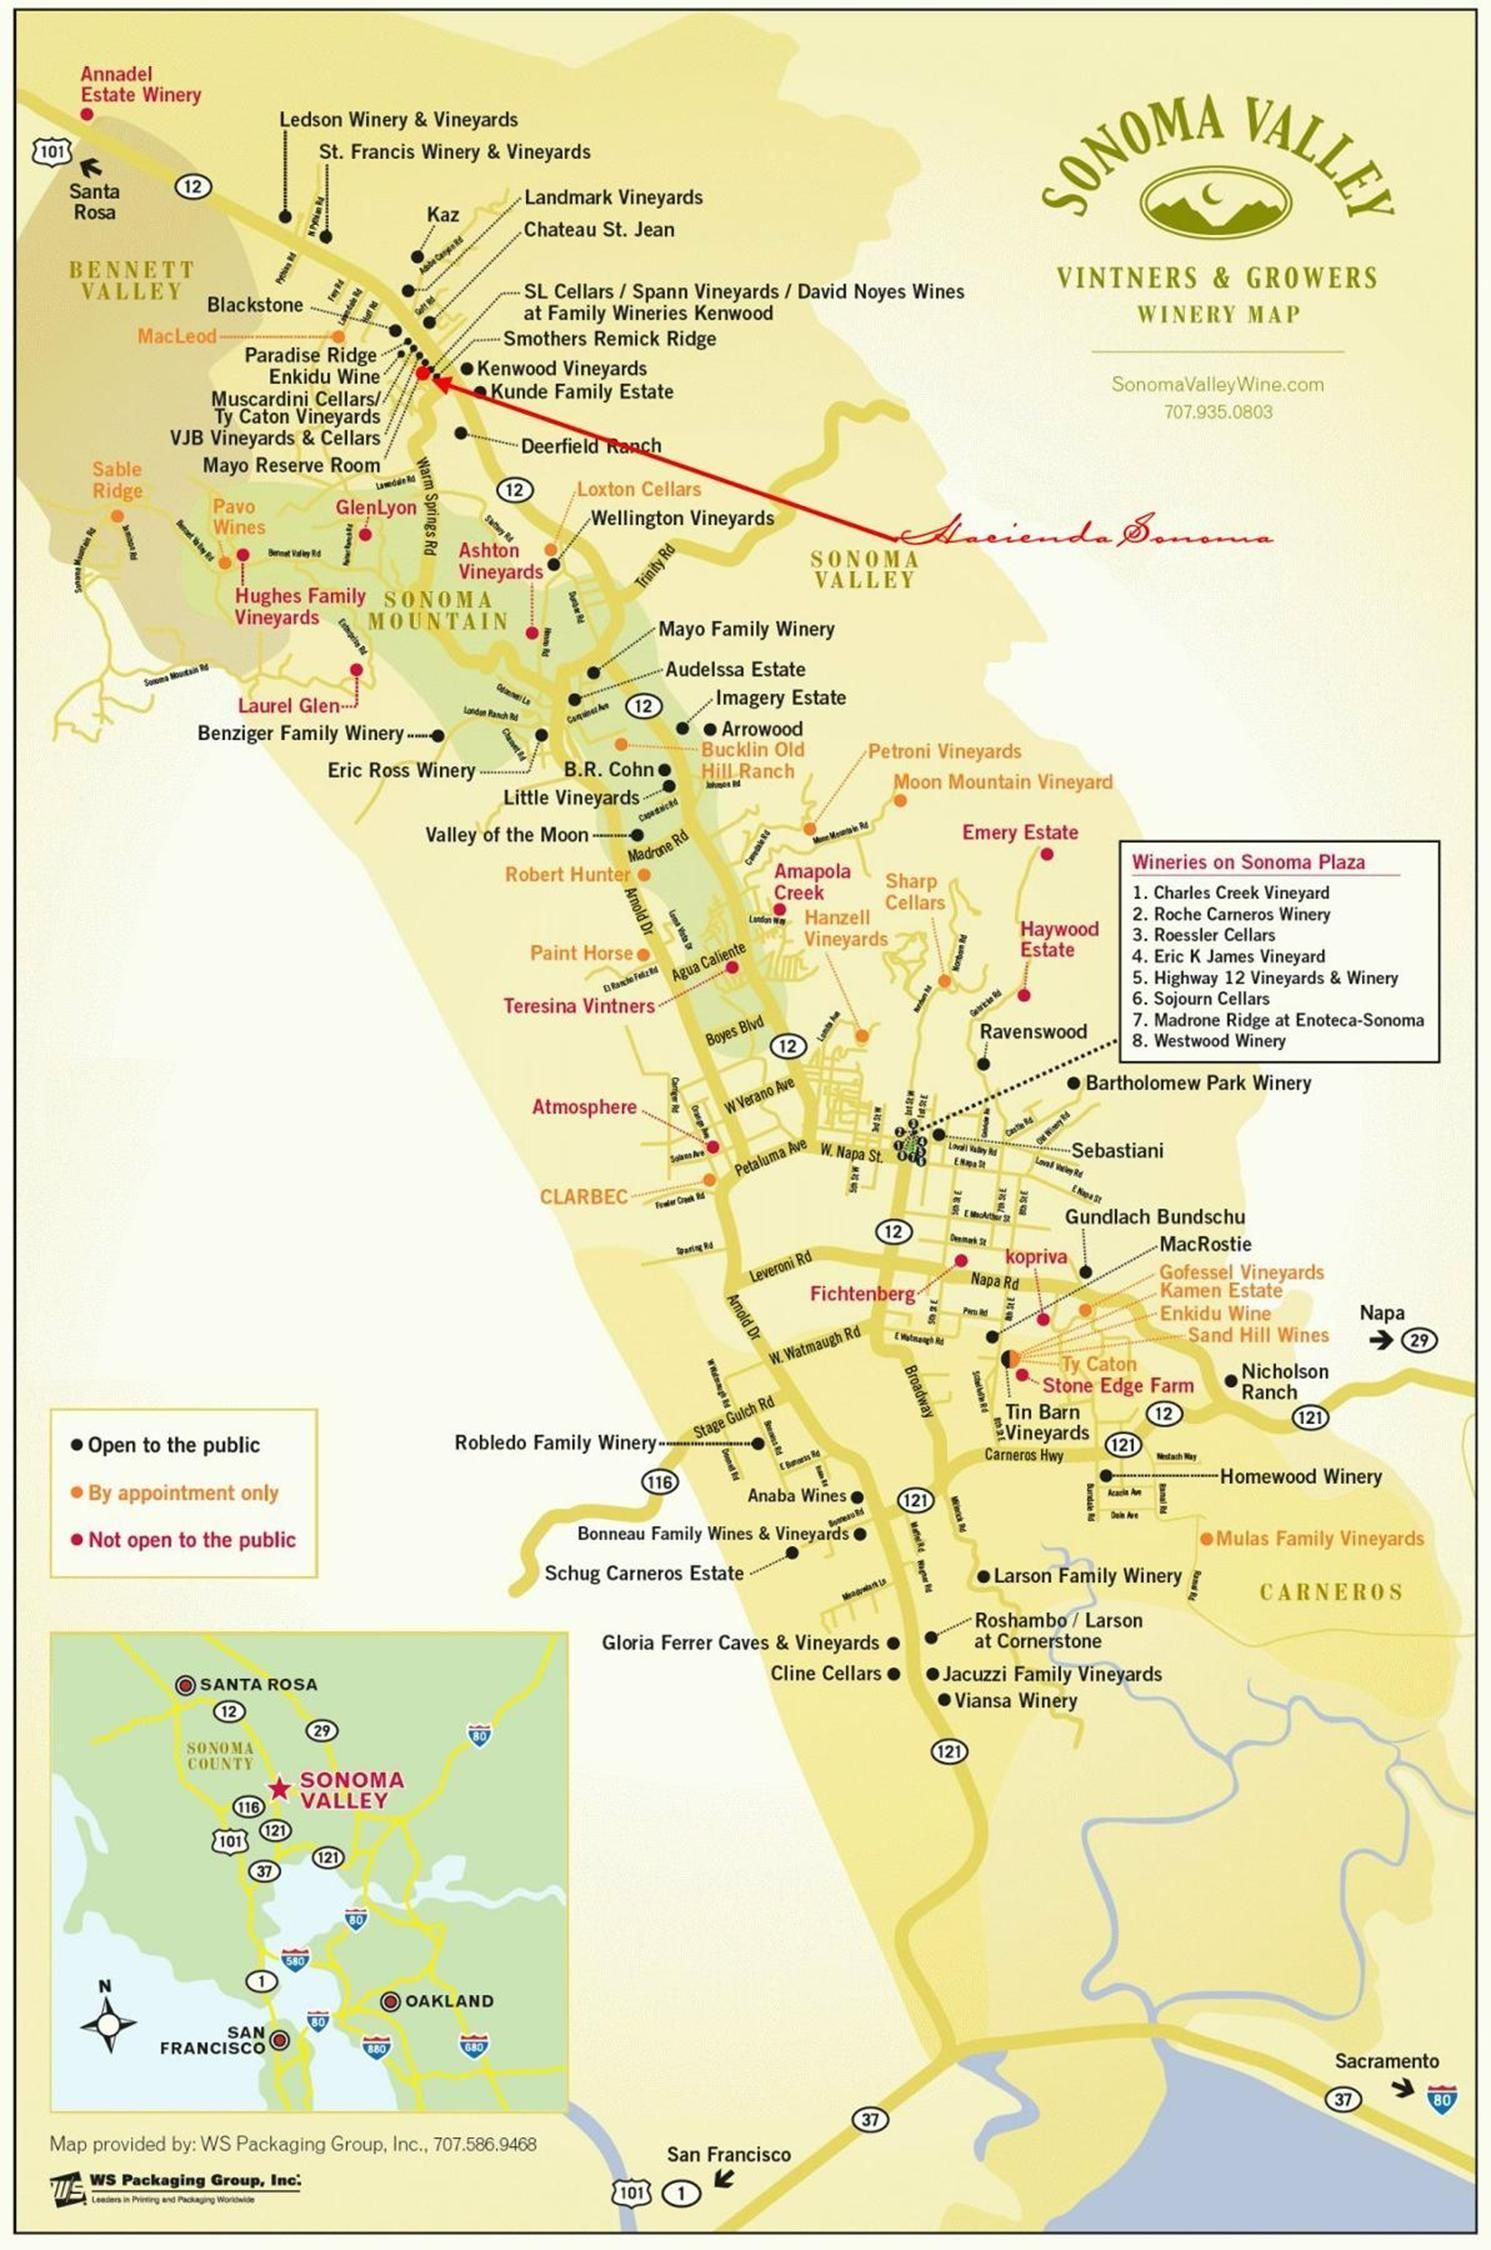 Map Of Sonoma Wineries Sonoma Valley Wineries | n a p a | s o n o m a in 2019 | Sonoma